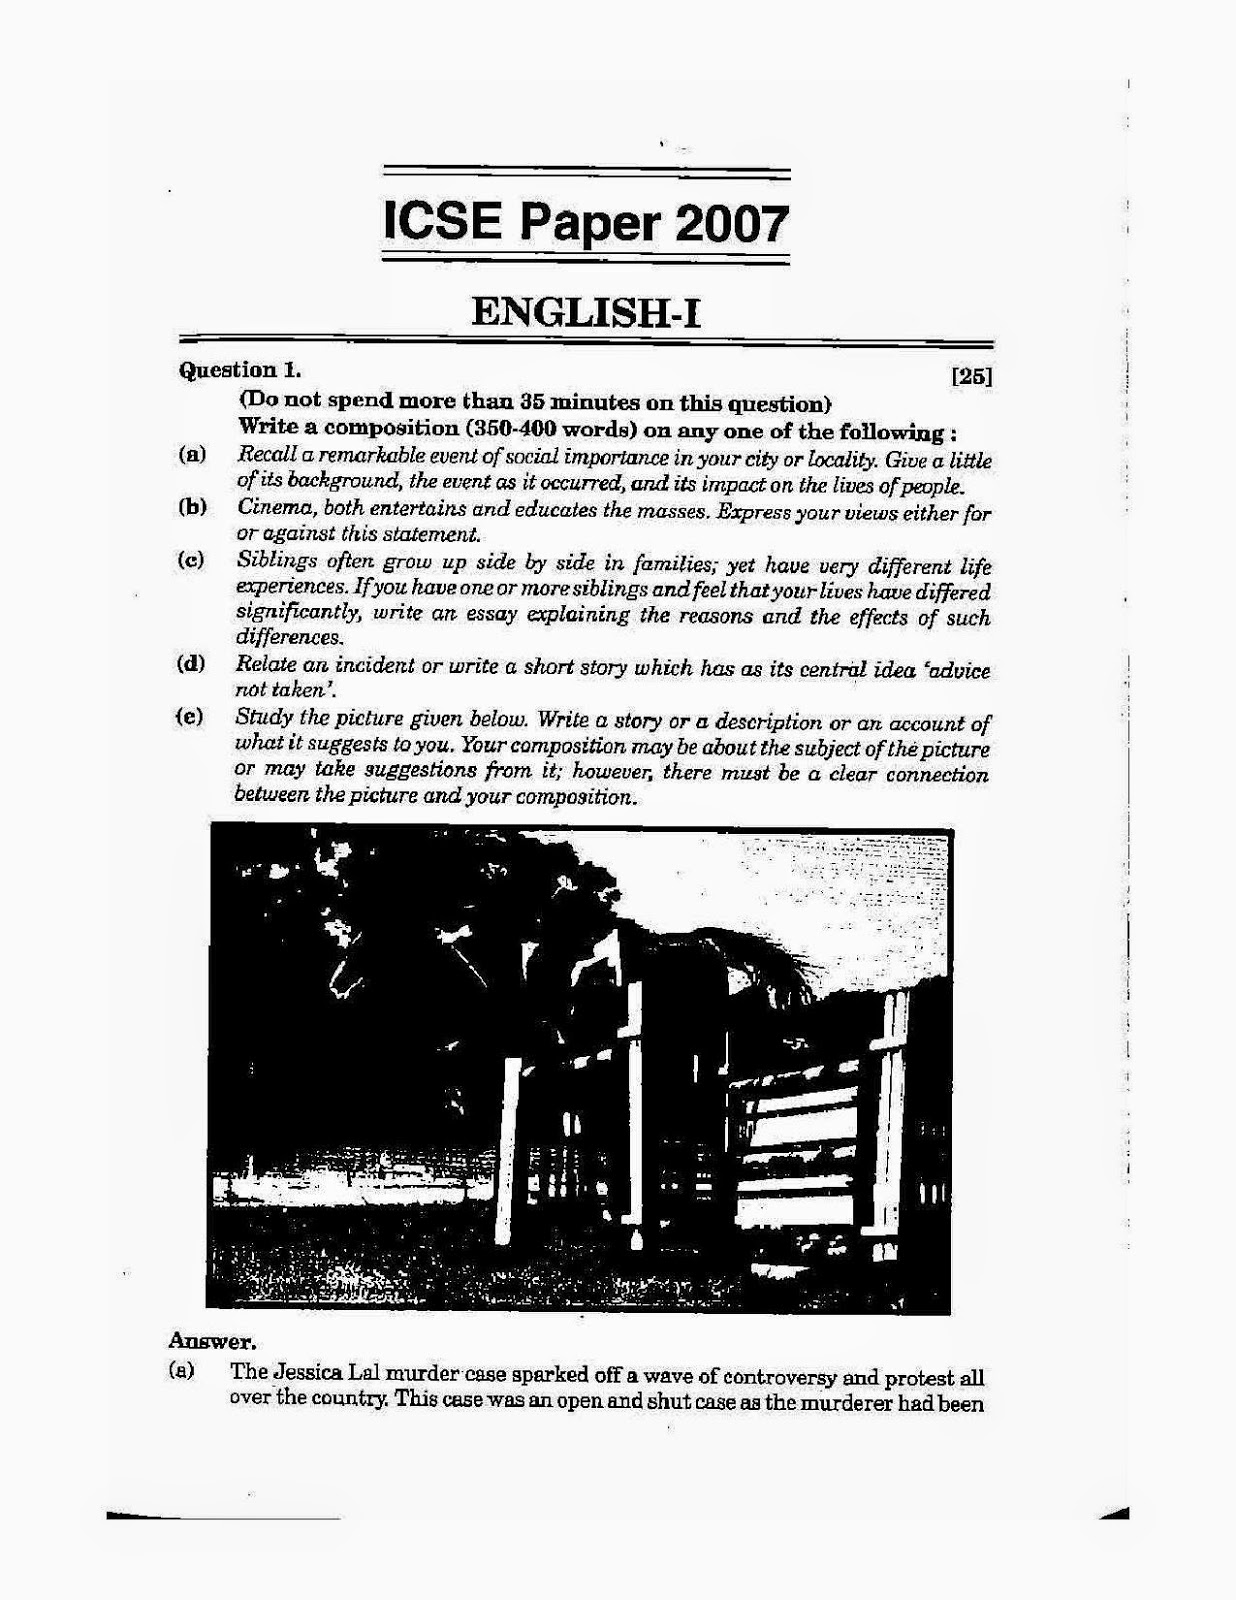 Icse class 10th 2007 English Language solved question paper 2007